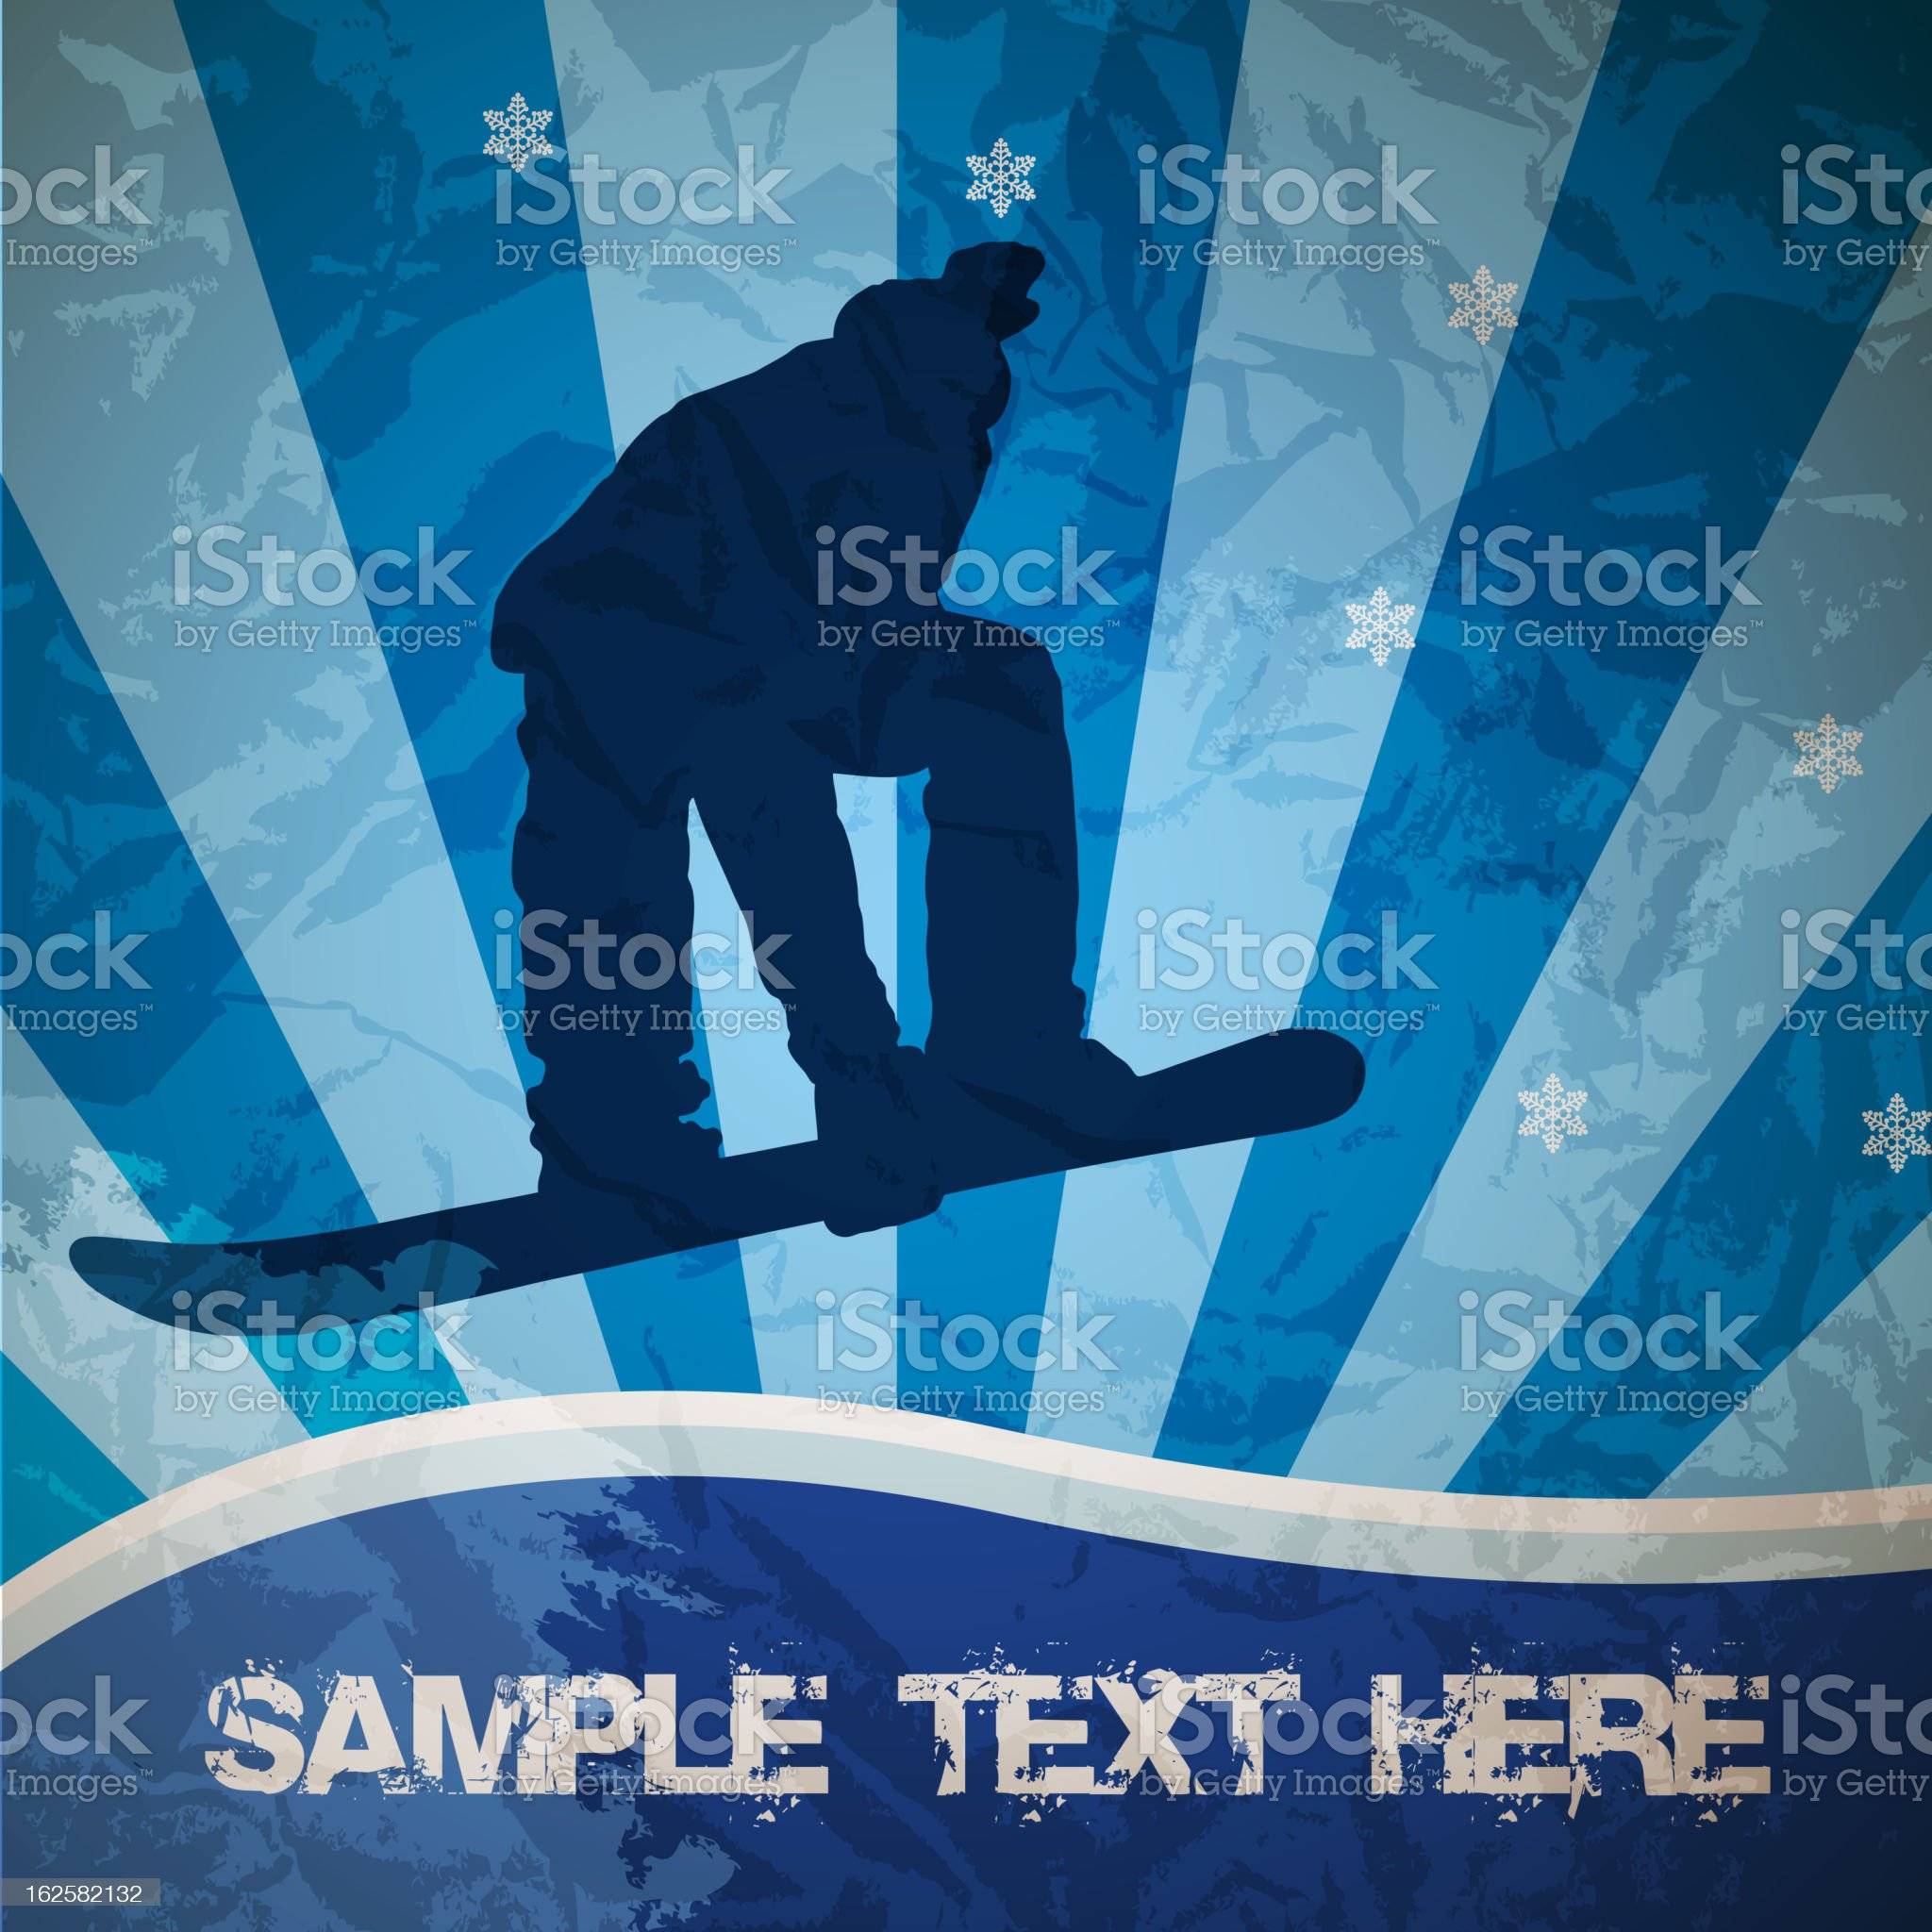 snowboarding vector illustration royalty-free stock vector art